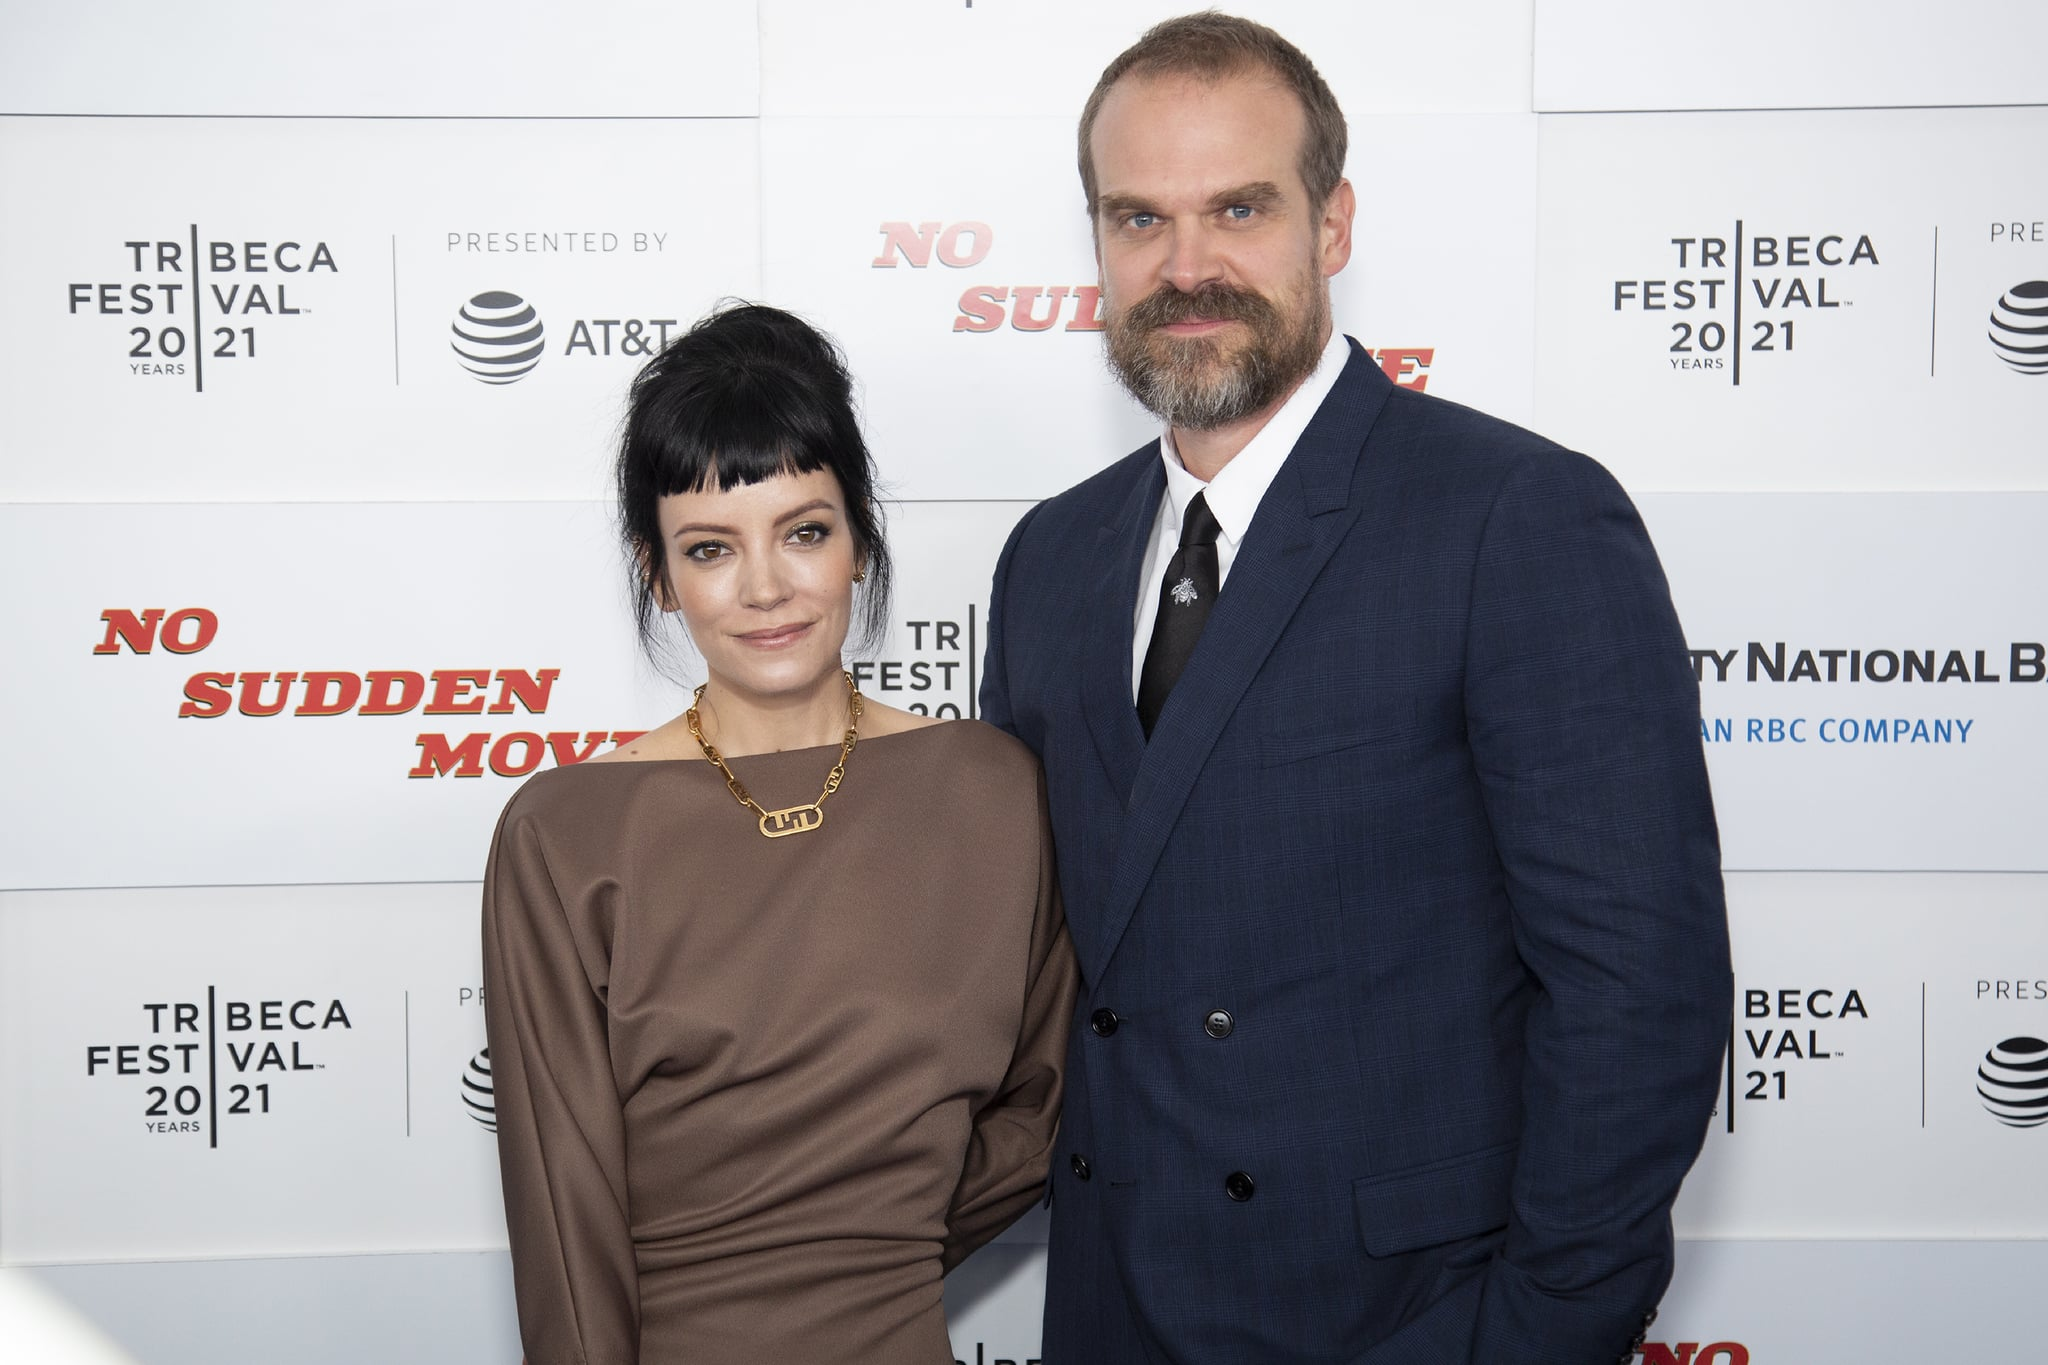 NEW YORK, NEW YORK - JUNE 18: Lily Allen and David Harbour attend 'No Sudden Move' during 2021 Tribeca Festival at The Battery on June 18, 2021 in New York City. (Photo by Santiago Felipe/Getty Images)